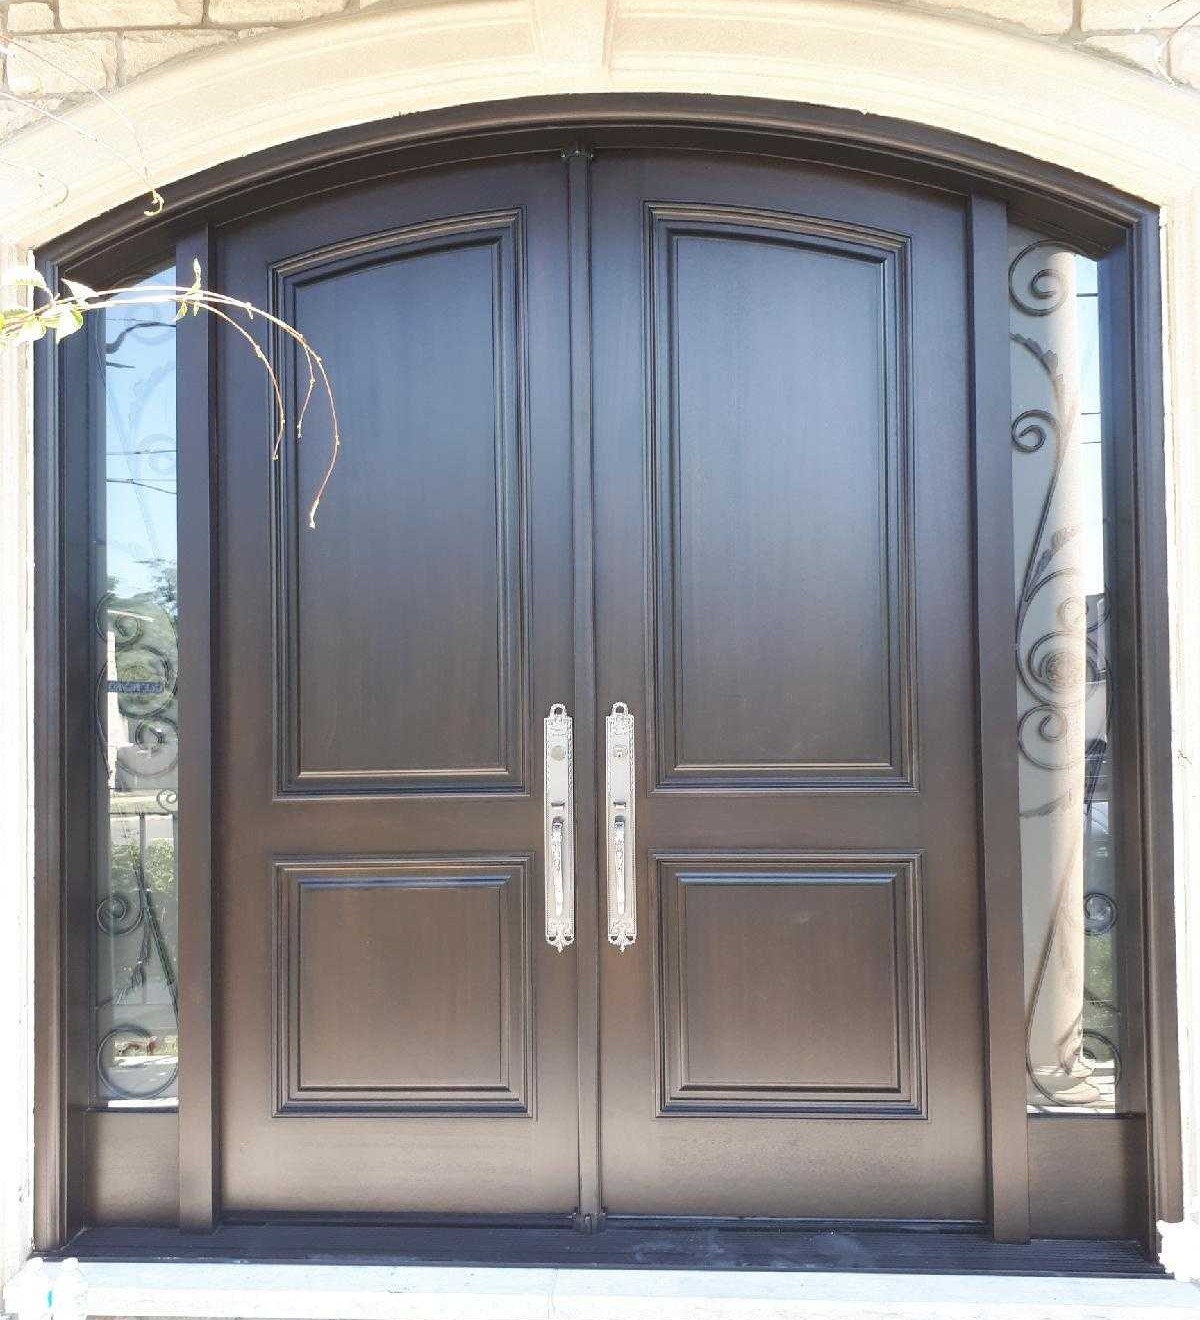 "Love of beauyi is taste. The creation of beauty is art"" #SolidWoodDoors, #Mahogany, #CustomMade, #CustomWoodDoors,#EntryDoors.#DistinctiveLo­ok, #FityourHome Made by #NorthwoodDoorsInc. Your best value and #QualityDoors, #HandCraftedDoors. Every door #ManifacturedDoors by us has our corporate stamp - a testament to our dedication and passion in #Woodwork. Let #NorthwoodDoorsInc. add to your home's #CurbAppeal by enhancing the quality and beauty of your #EntryDoor. #MadeinCanada Visit our #Showroom to envision how one of our many doors on display might look like at your home. Contact us today Tel. 416-253-2034, info@northwooddoors.com, www.northwooddoor.com — Toronto"